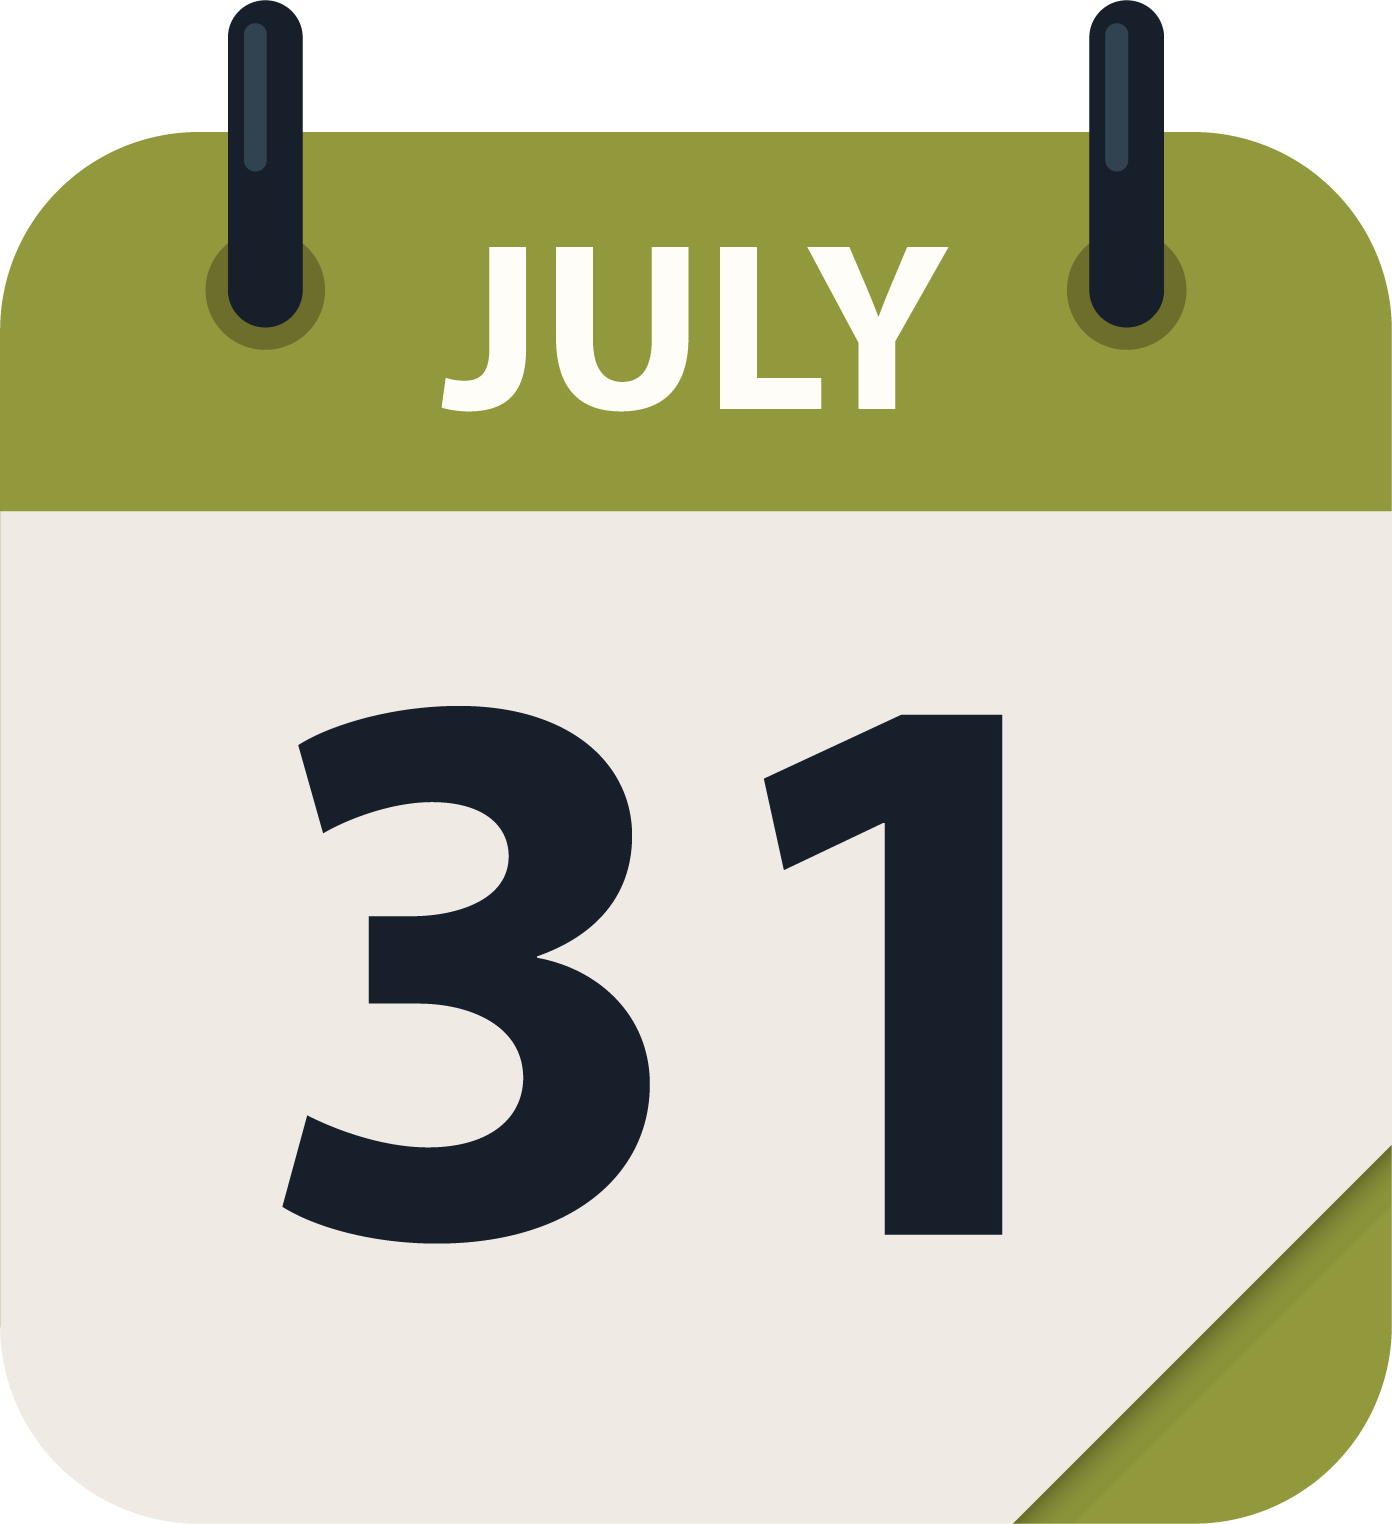 July 31 cal icon